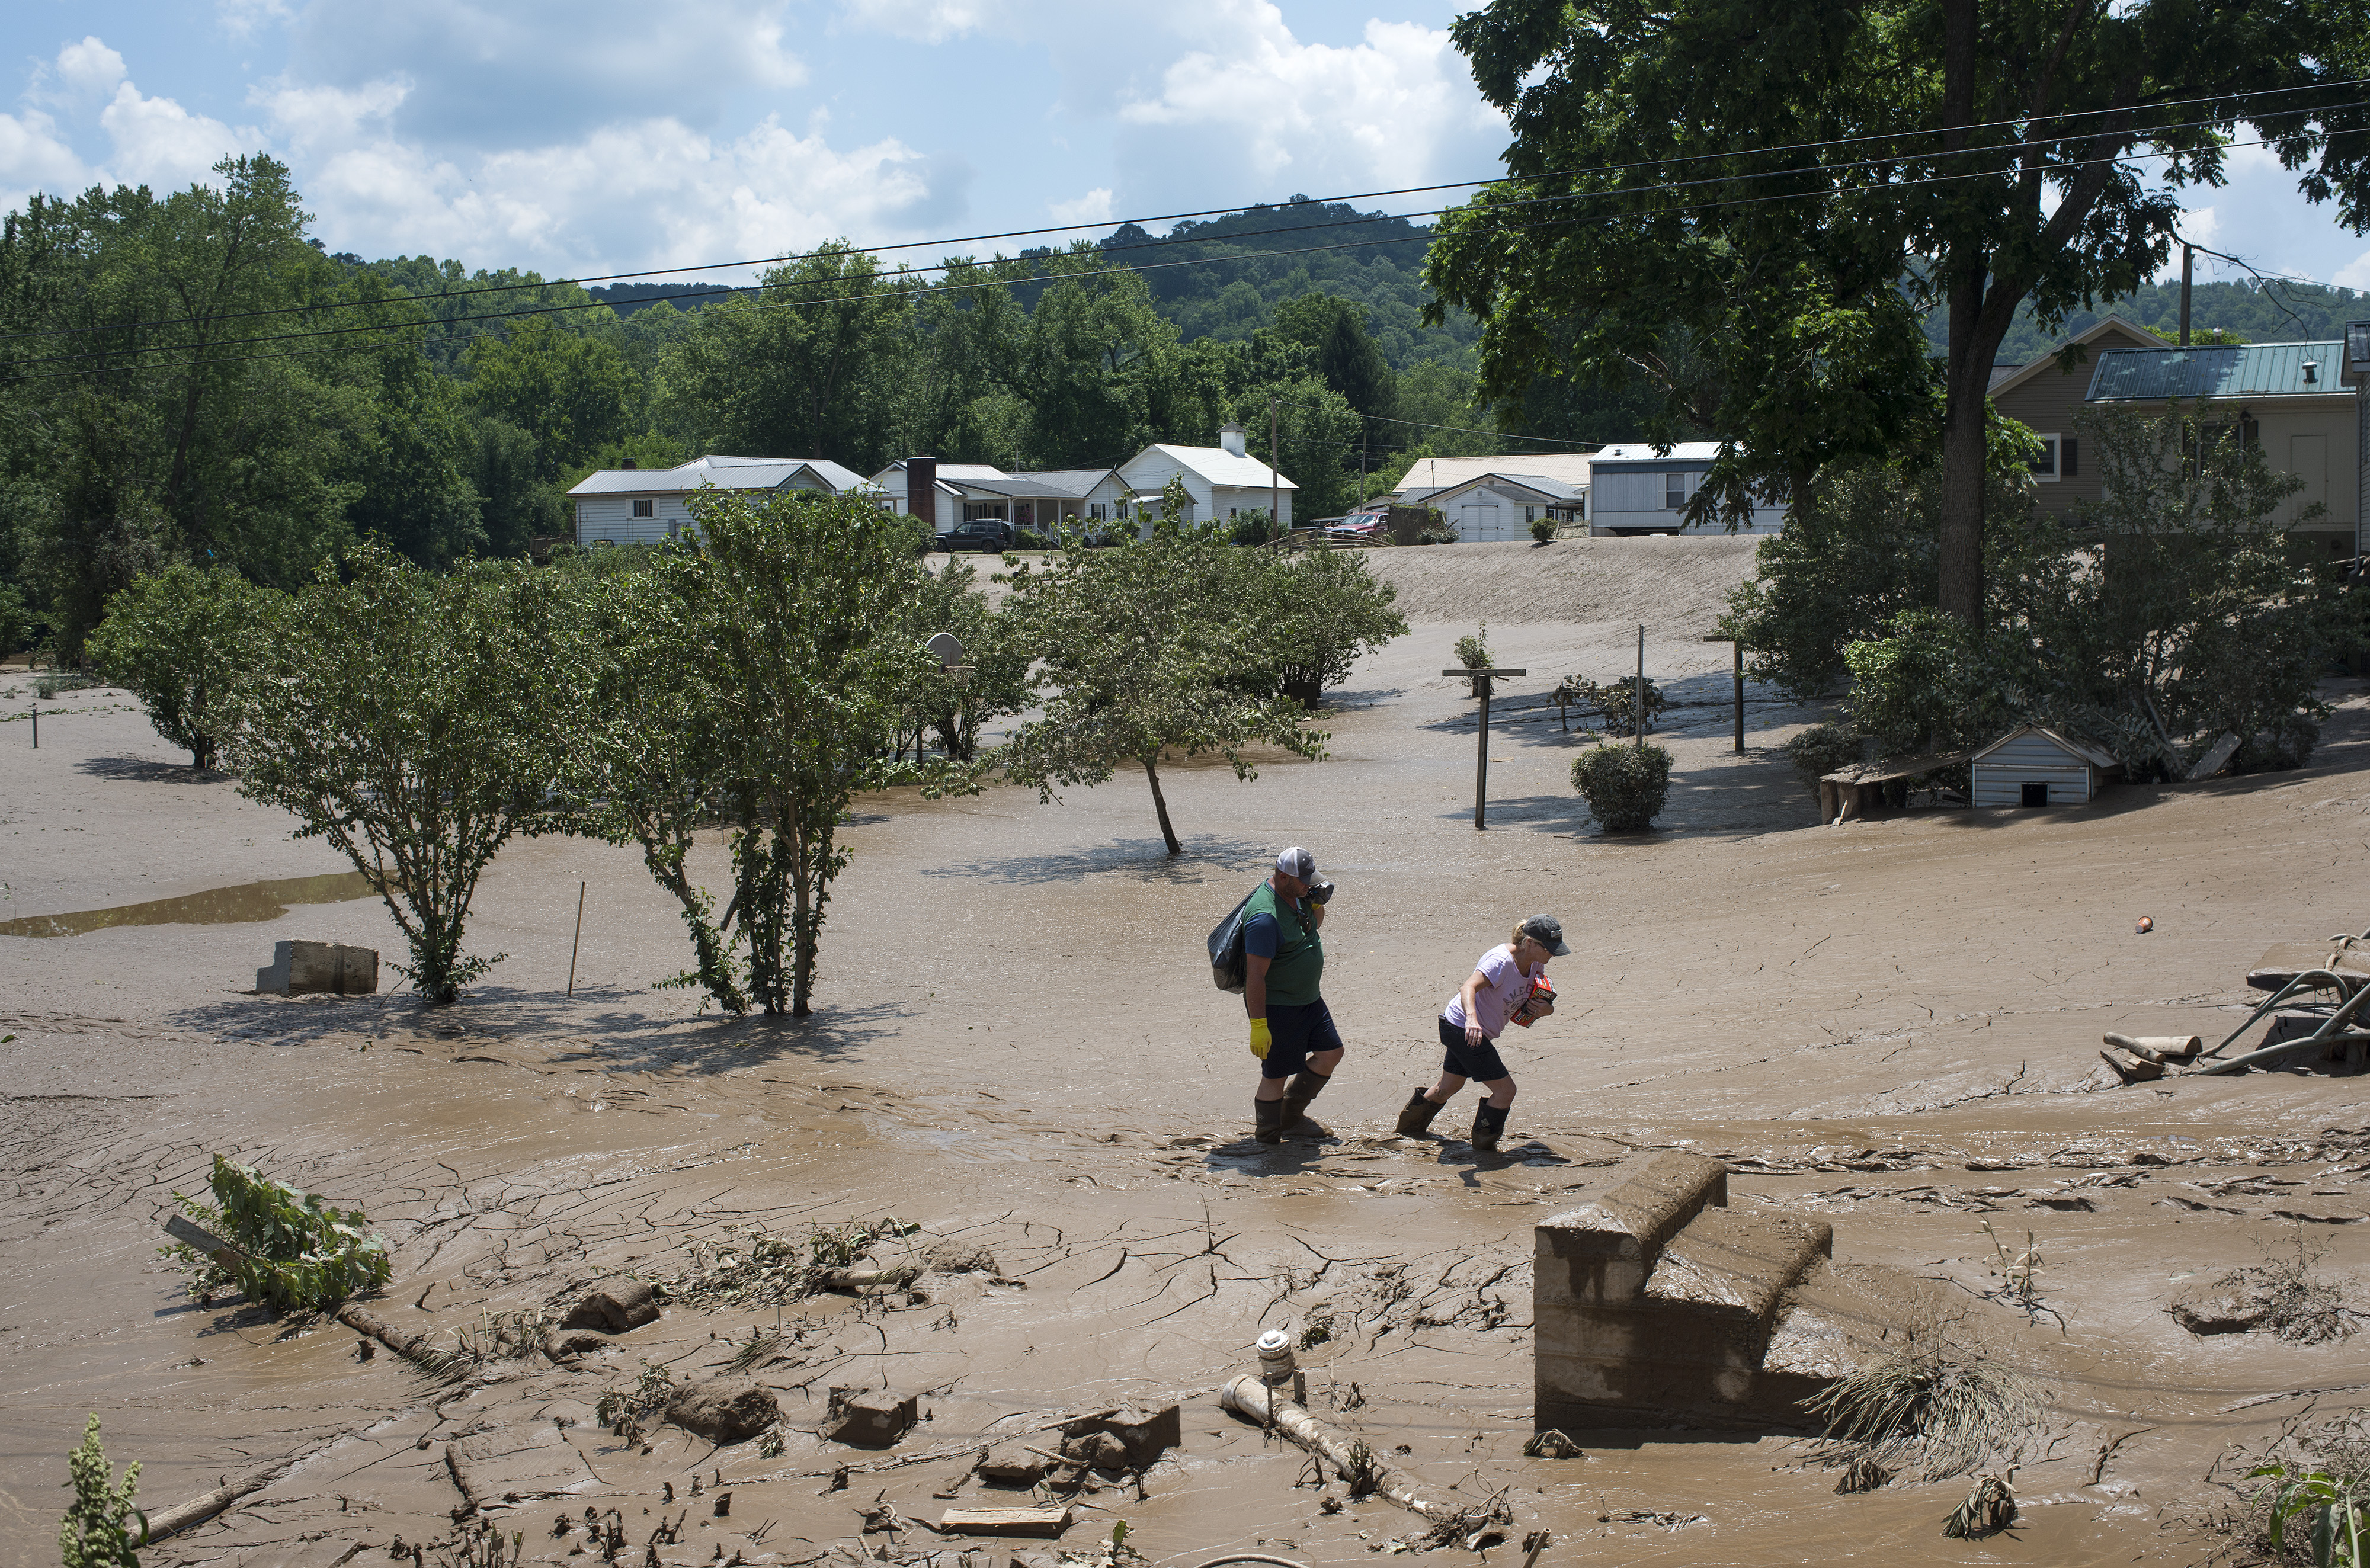 People trudge through the mud left over from the flooding of the Elk River along State Route 119, on June 25, 2016, in Falling Rock, West Virginia. The flooding of the Elk River claimed the lives of at least 23 people in West Virginia. (Getty Images)